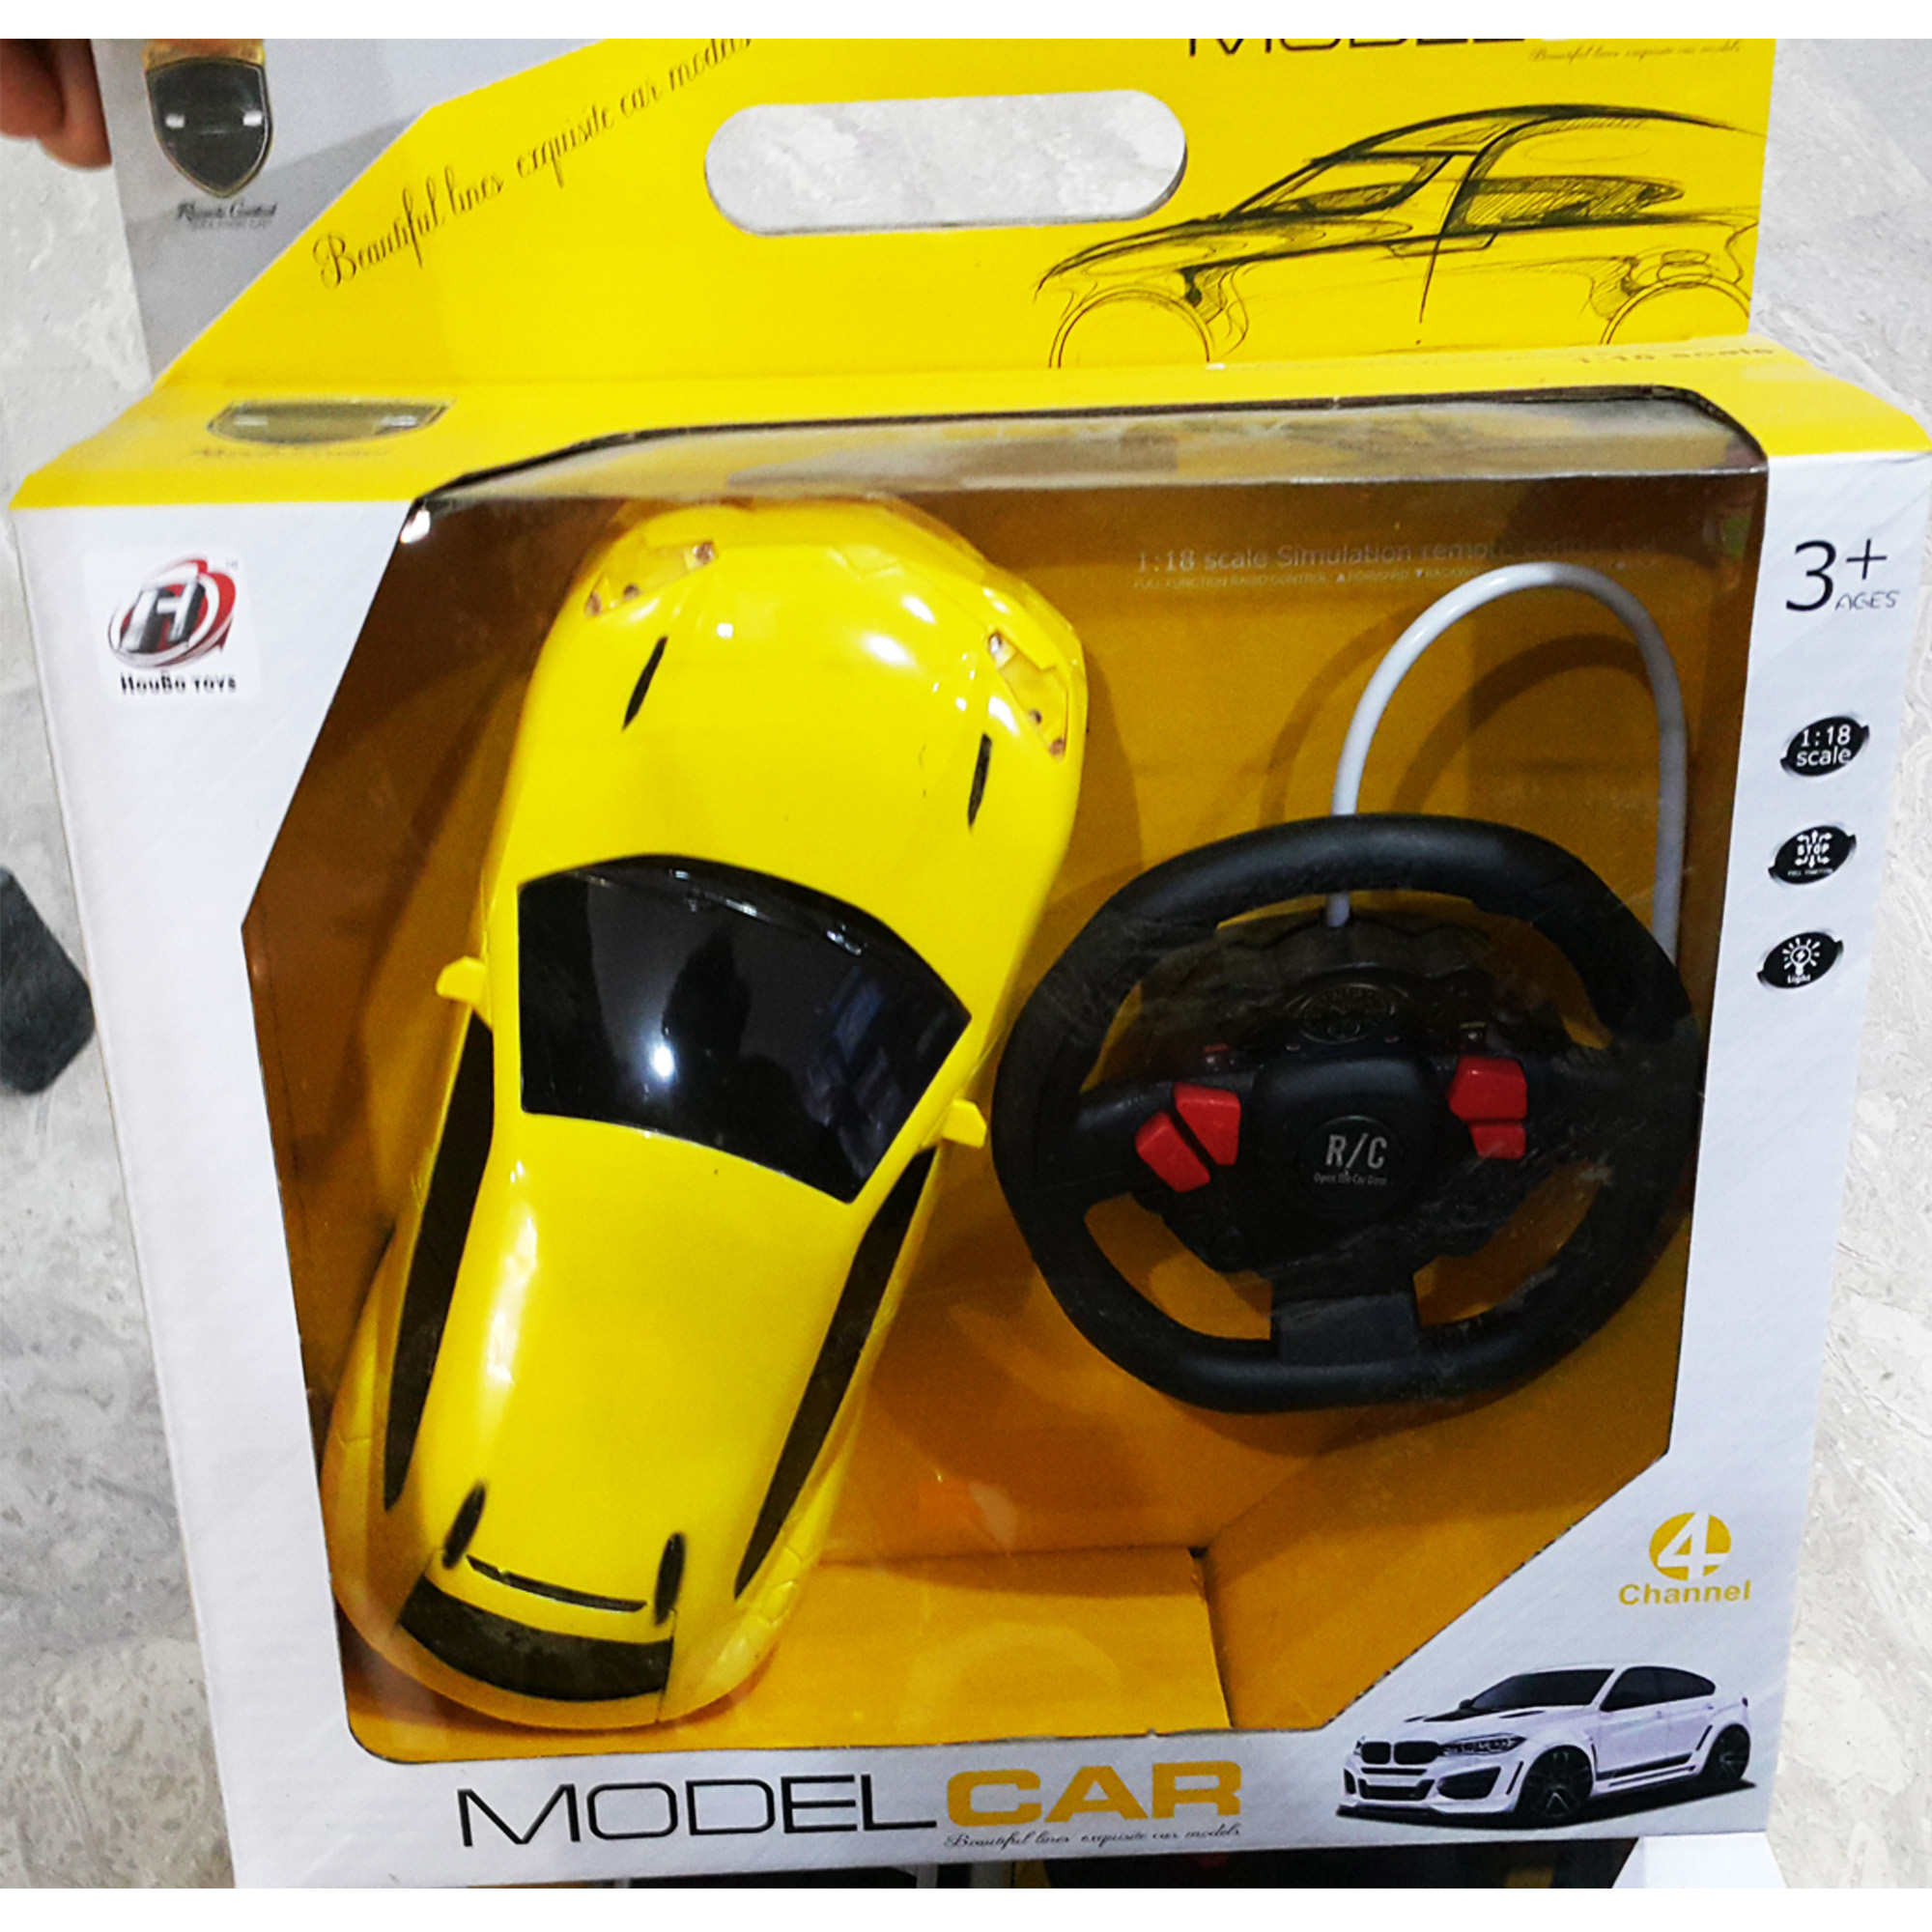 1:18 Steering Style Remote Control Car Full Function With Light - STNRC